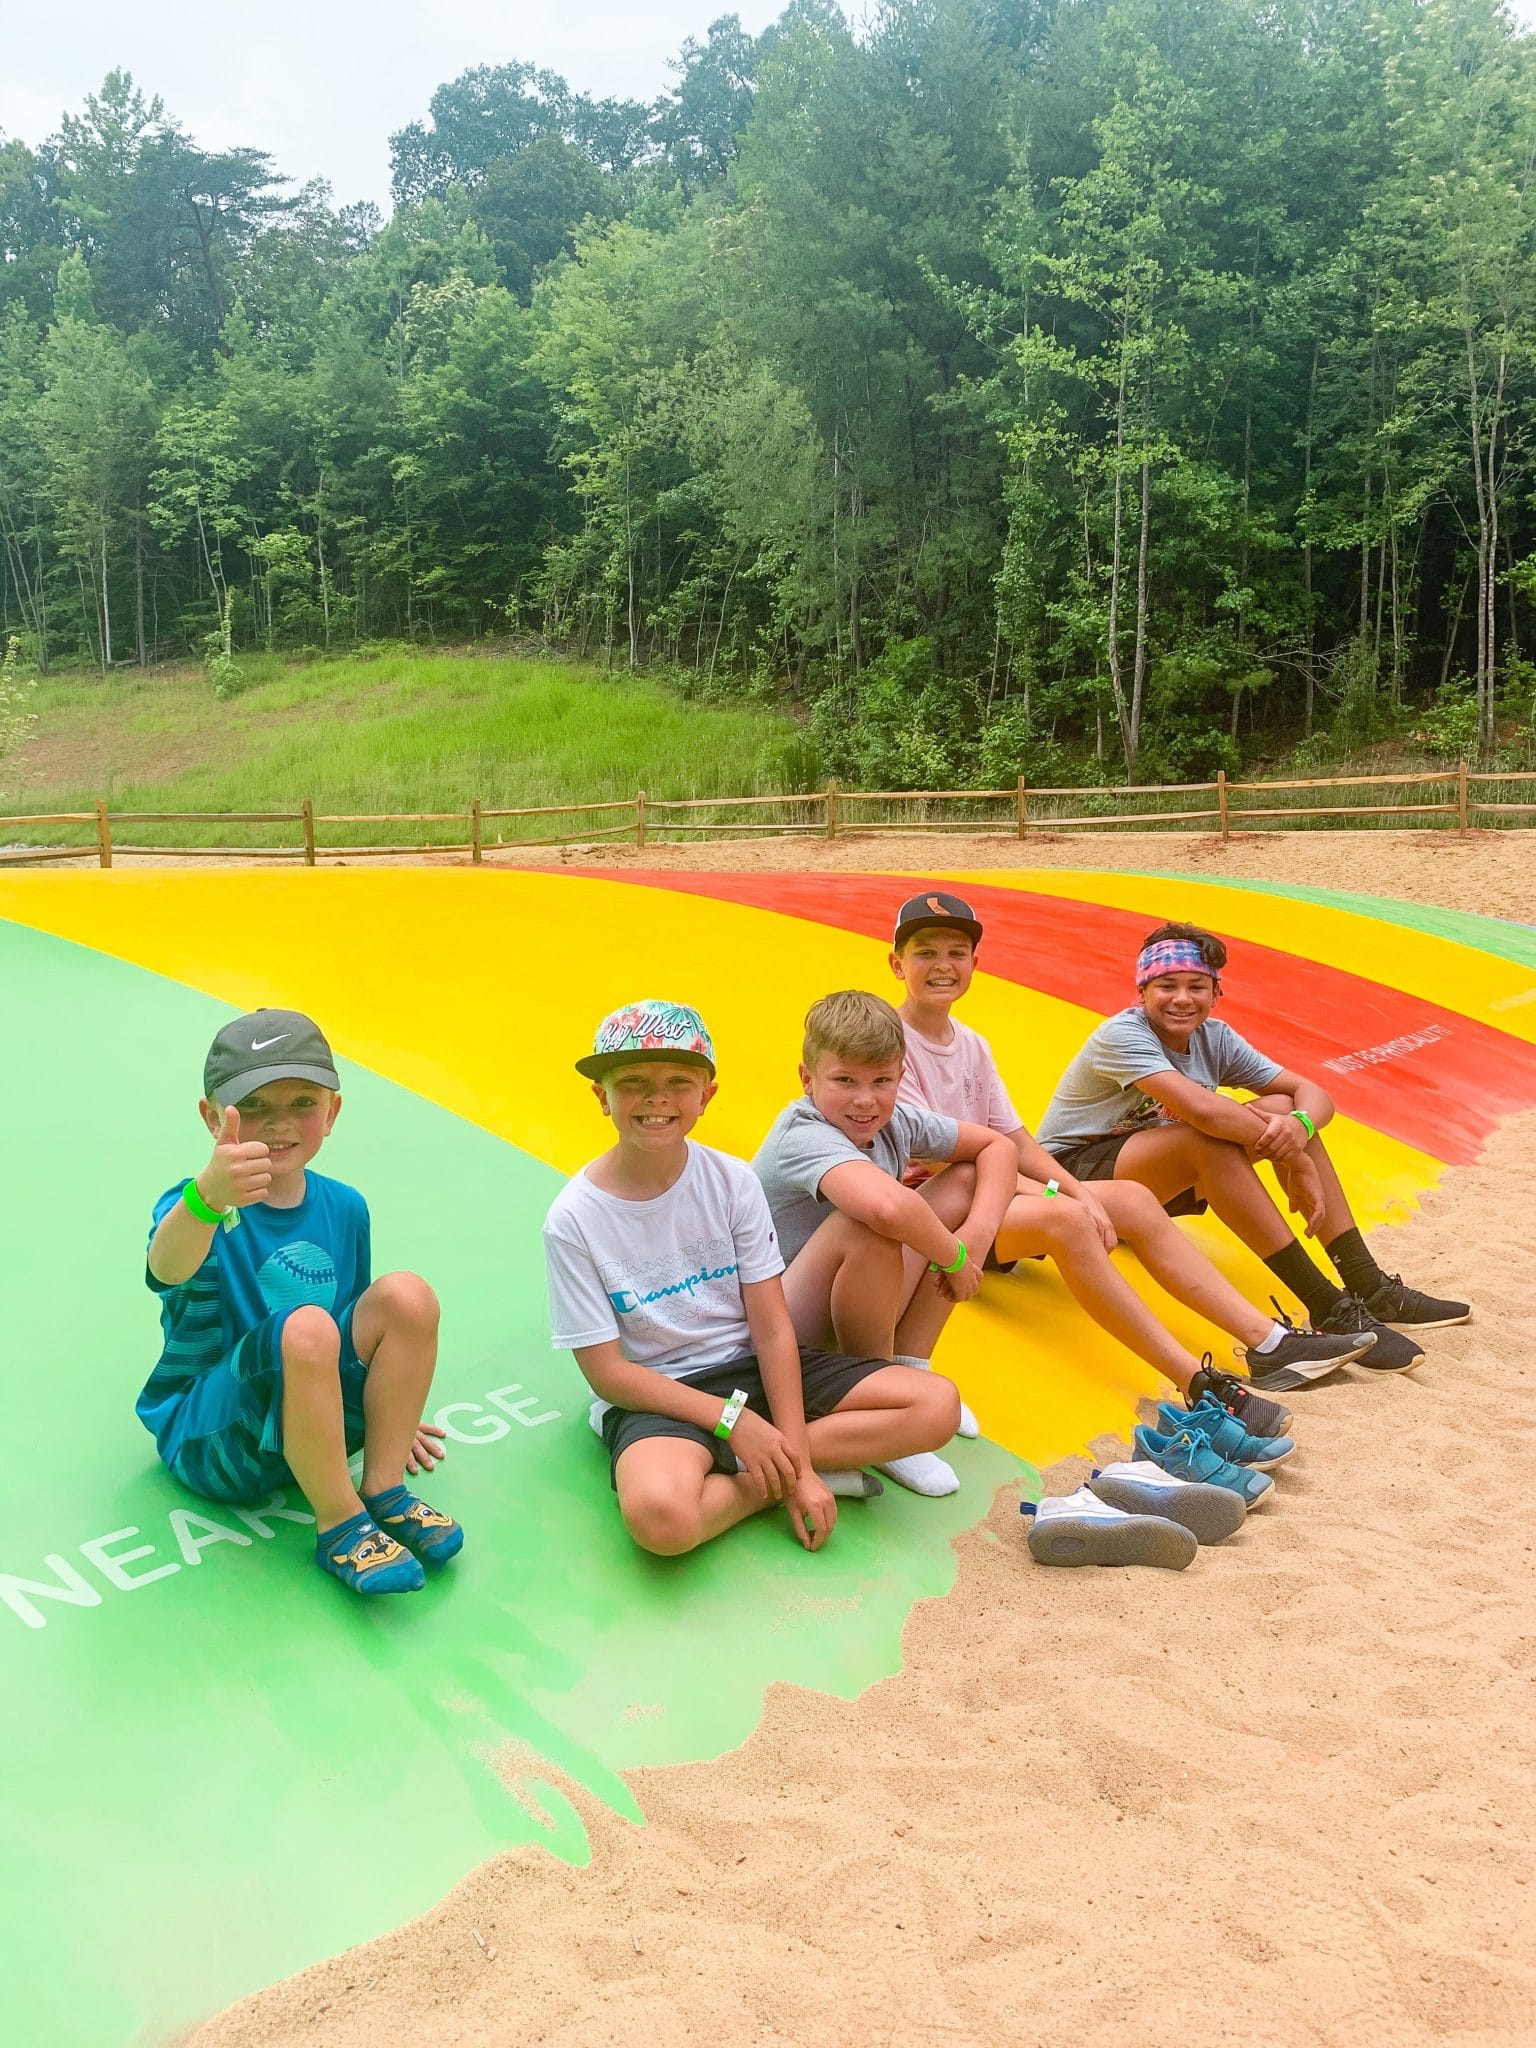 Jellystone Golden Valley, Bostic North Carolina, Charlotte Camping Trip, Stilettos and Diapers